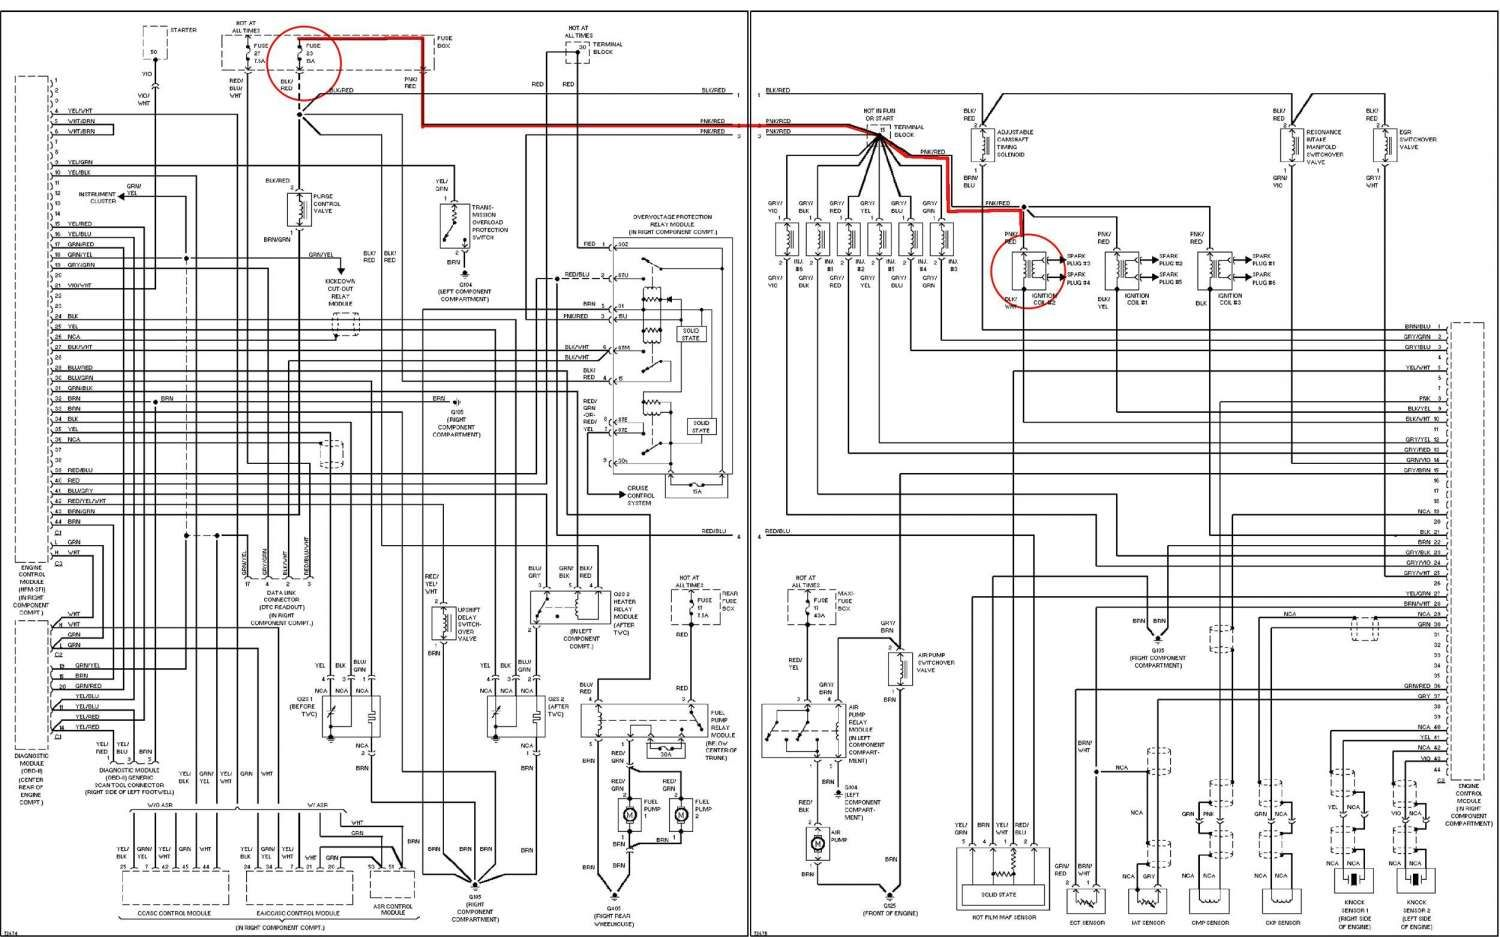 Mercedes Benz Schematics - Wiring Diagram Overview visualdraw-soul -  visualdraw-soul.aigaravenna.itaigaravenna.it